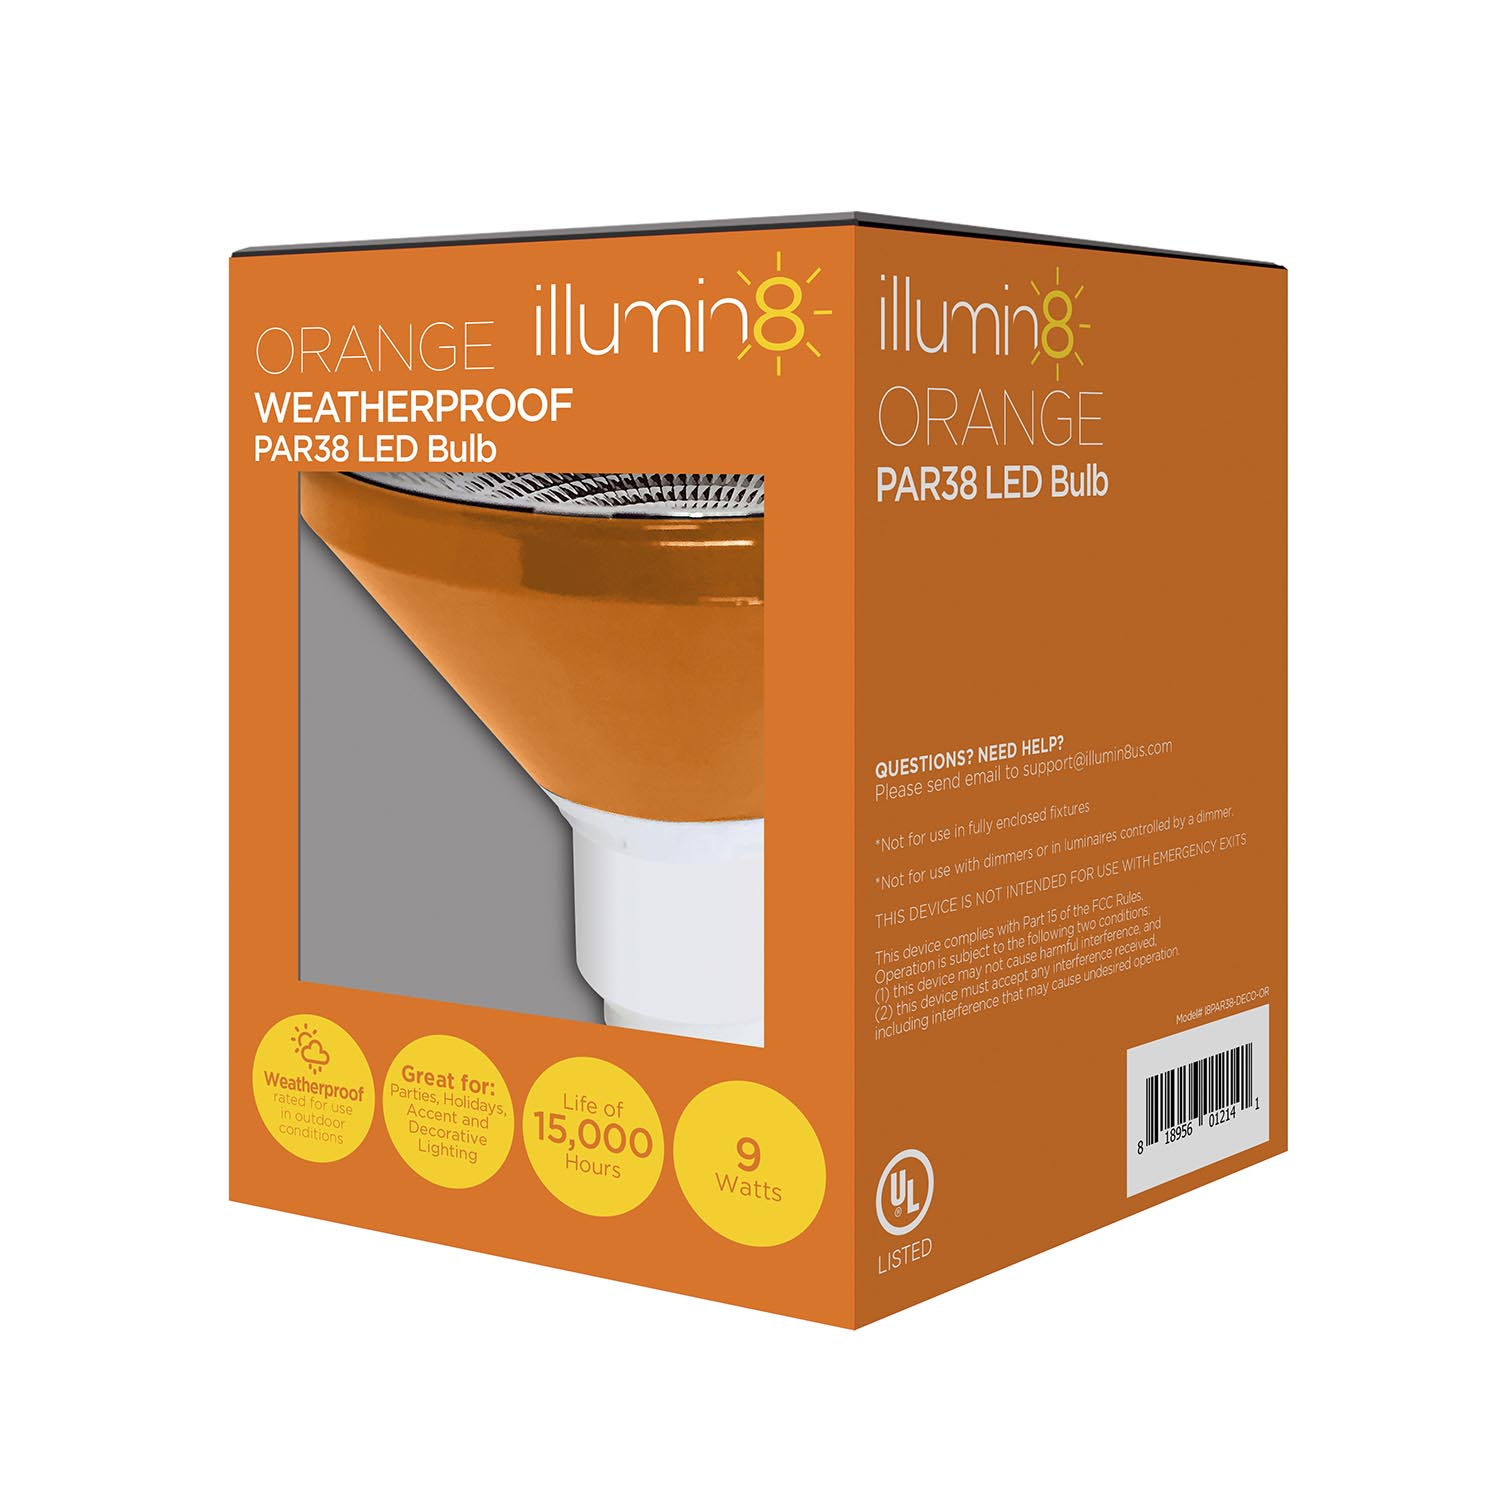 Illumin8 ipar38 deco or par38 orange led light bulb non dimmable 9 illumin8 par38 orange led indooroutdoor flood light non dimmable 3100cd 9 watts i8par38 deco or audiocablefo